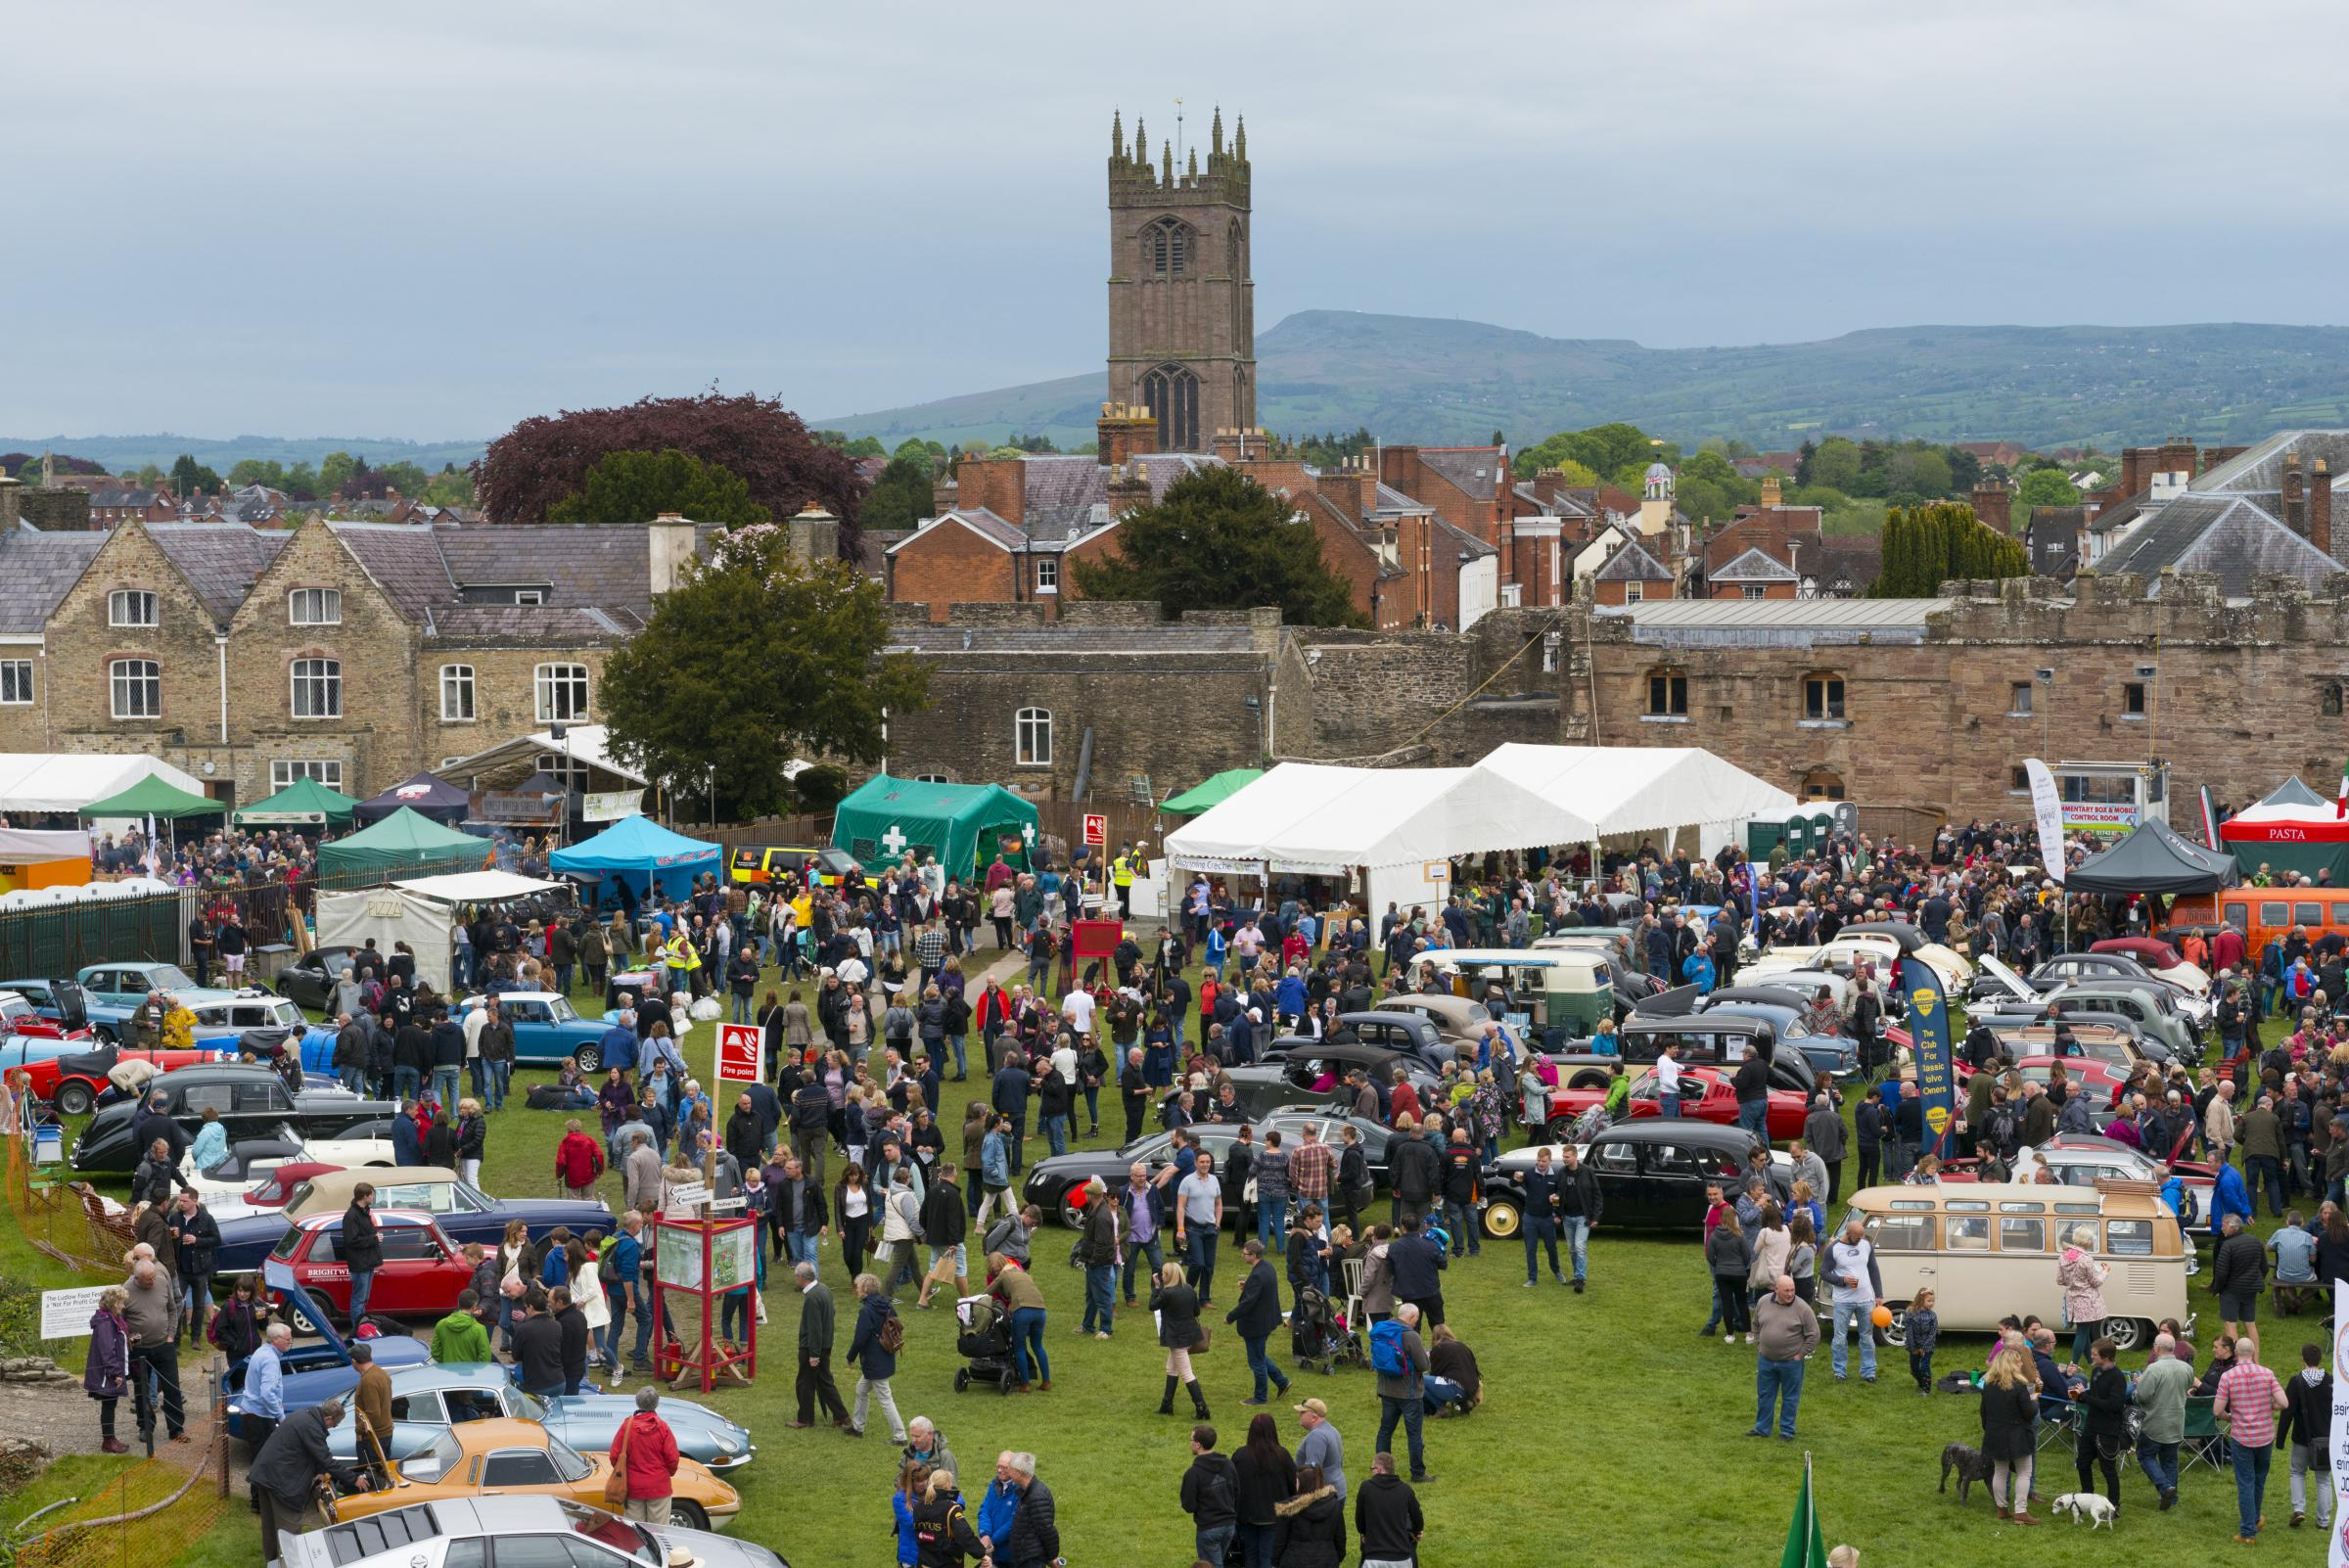 Looking down on the castle grounds at the 2017 Ludlow Spring Festival. Picture: Shropshire and Beyond